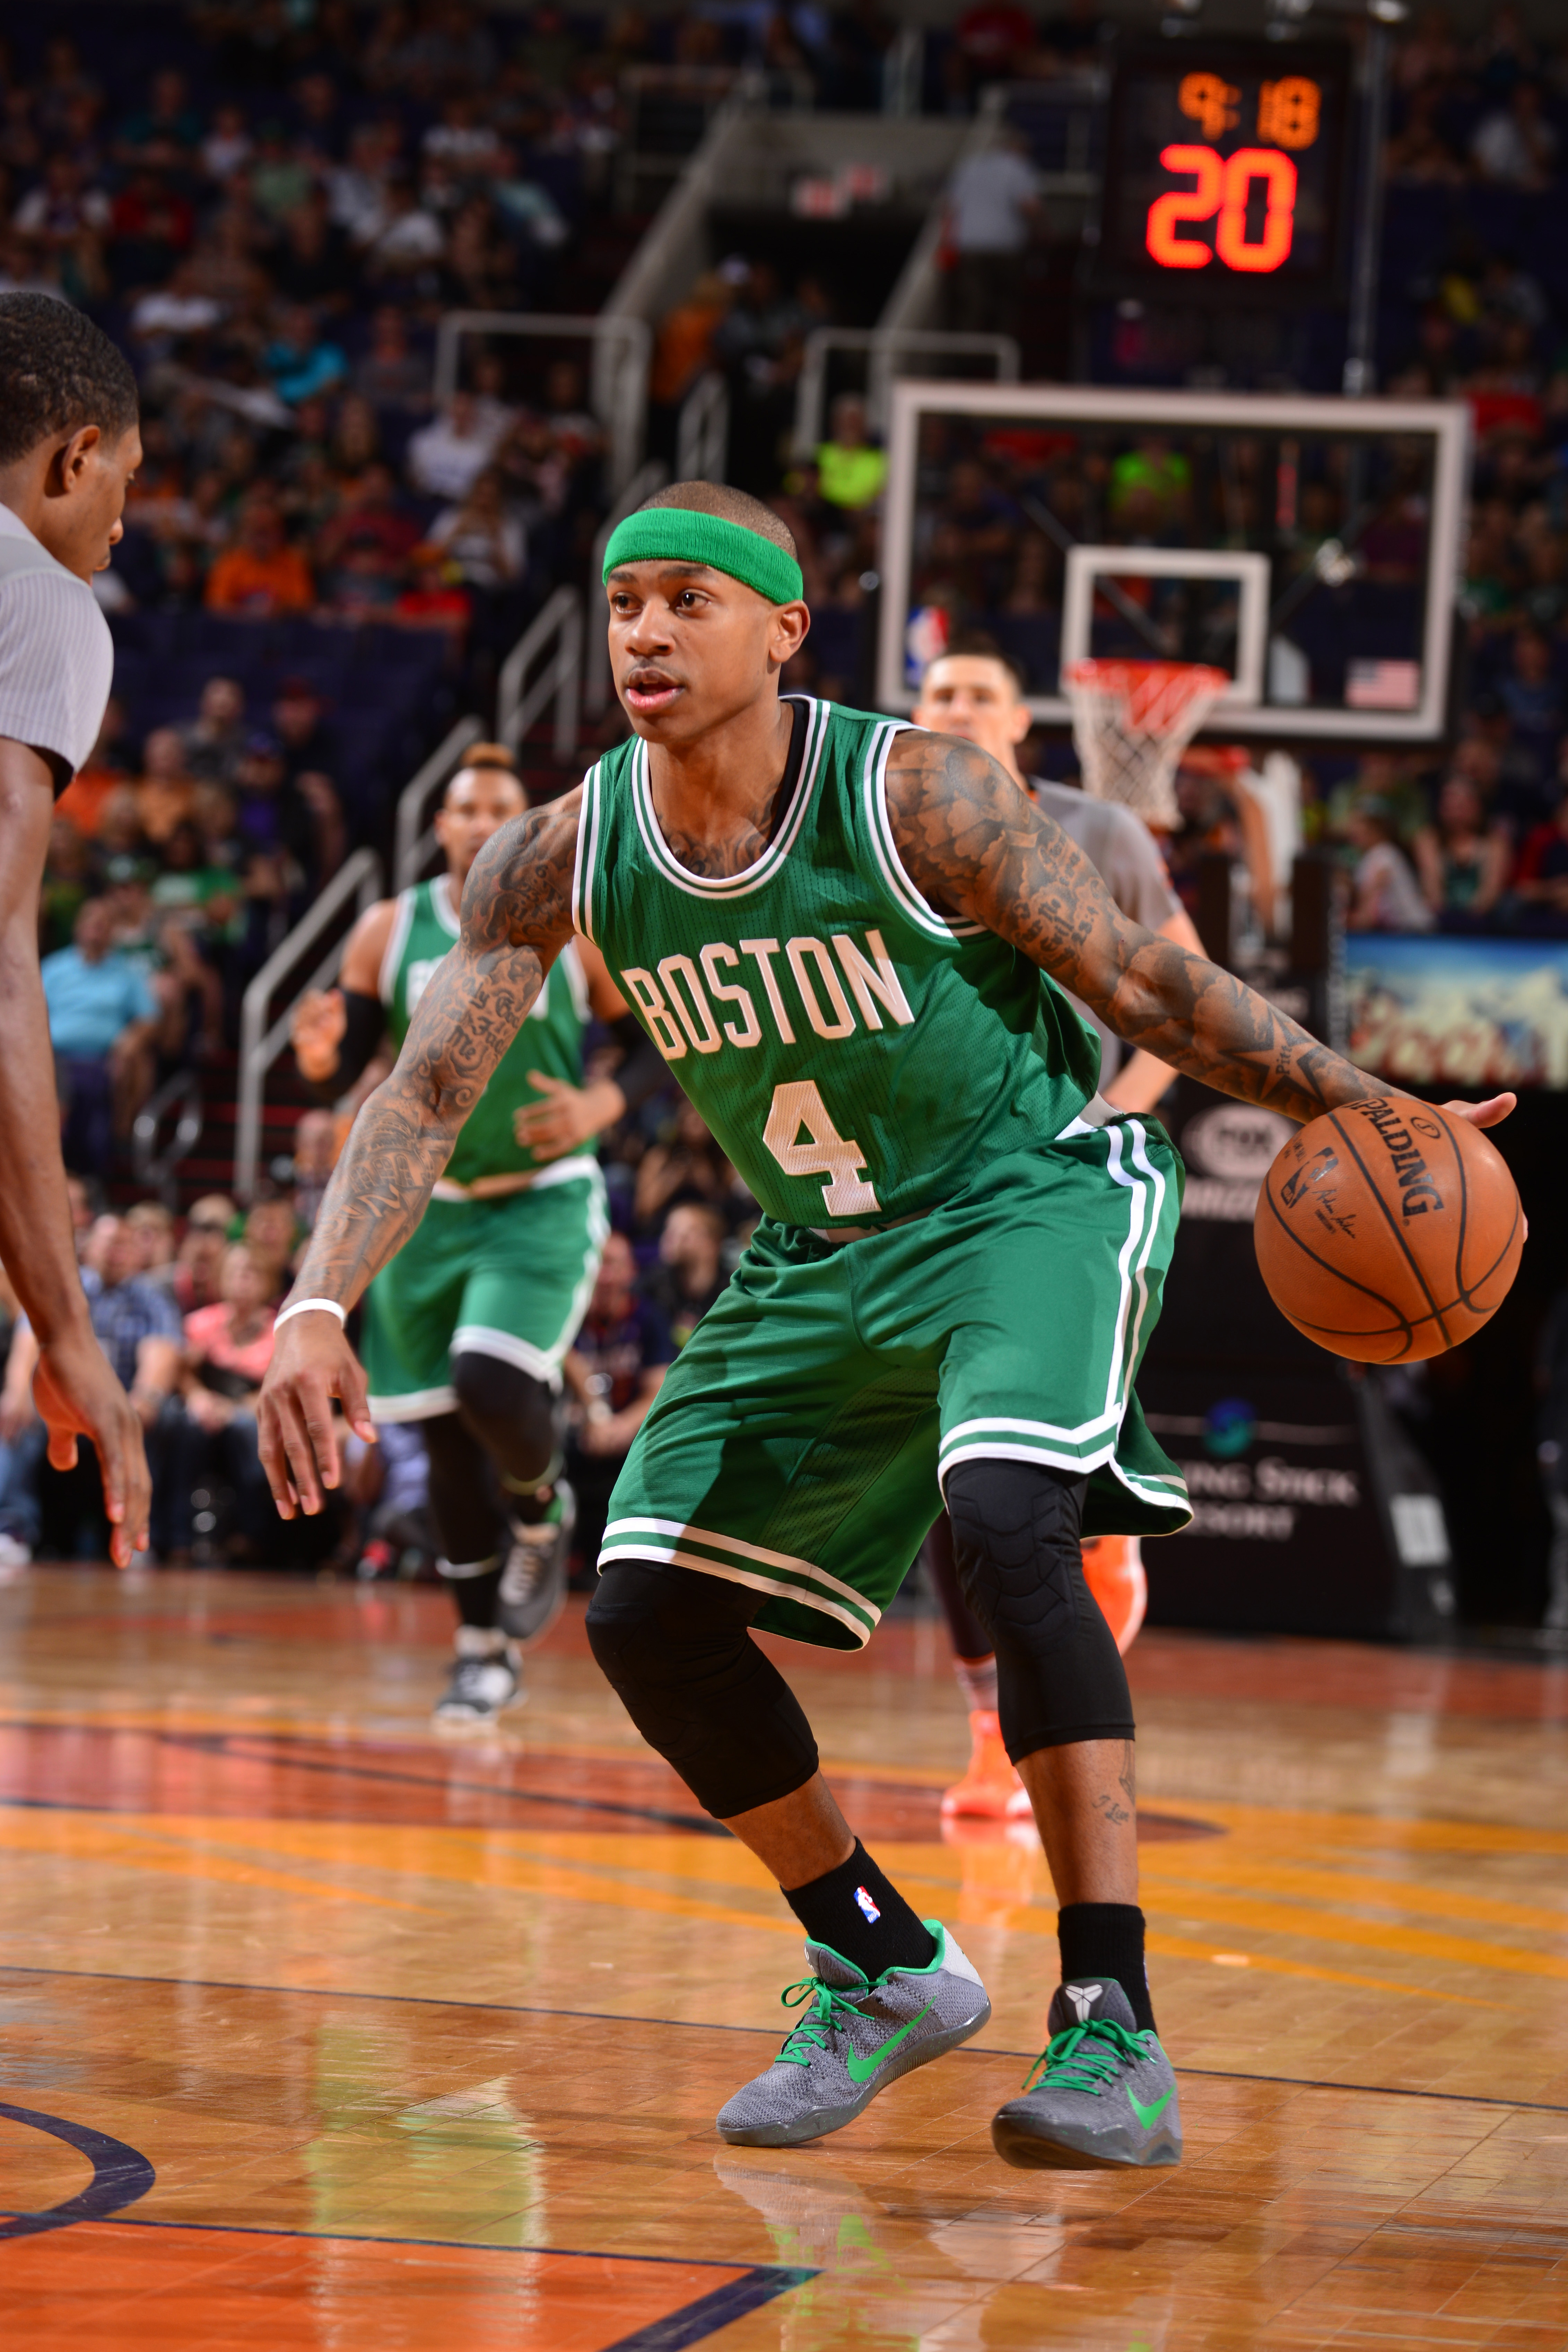 PHOENIX, AZ - MARCH 26:  Isaiah Thomas #4 of the Boston Celtics handles the ball against the Phoenix Suns on March 26, 2016 at Talking Stick Resort Arena in Phoenix, Arizona. (Photo by Barry Gossage/NBAE via Getty Images)